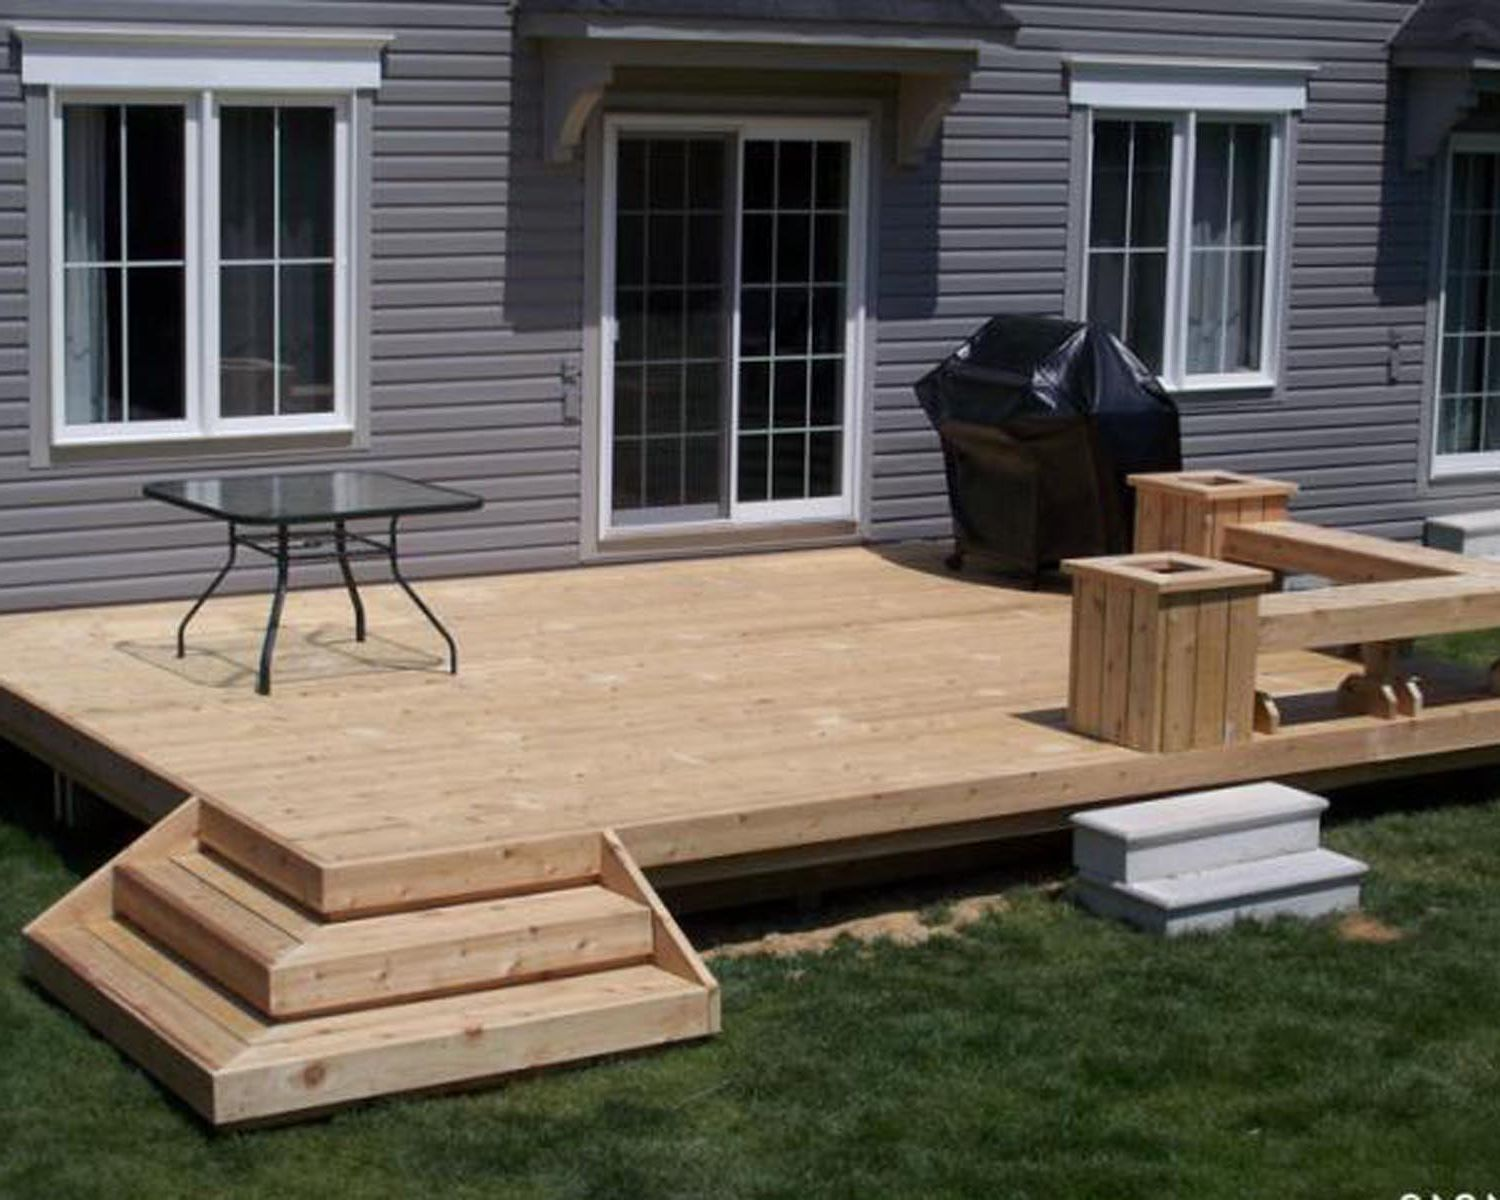 Ideas For Deck Designs how to design a deck for the backyard create a safe but open wood deck design 25 Best Ideas About Backyard Deck Designs On Pinterest Deck